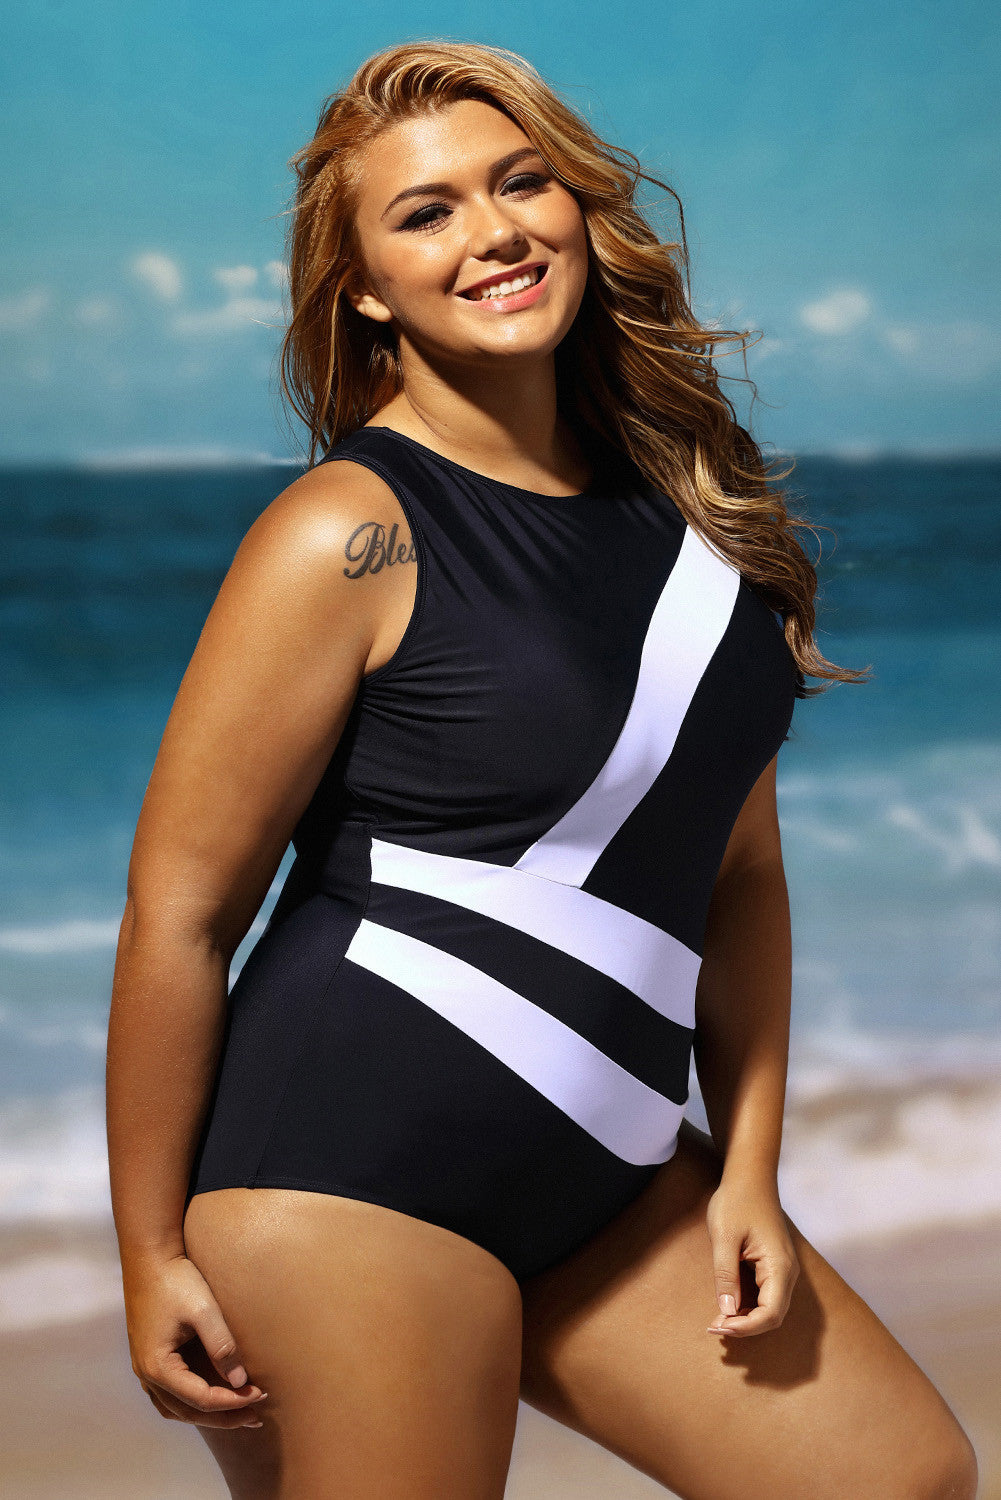 Her Contrast White Diagonal Splicing Black Monokini Swimsuit